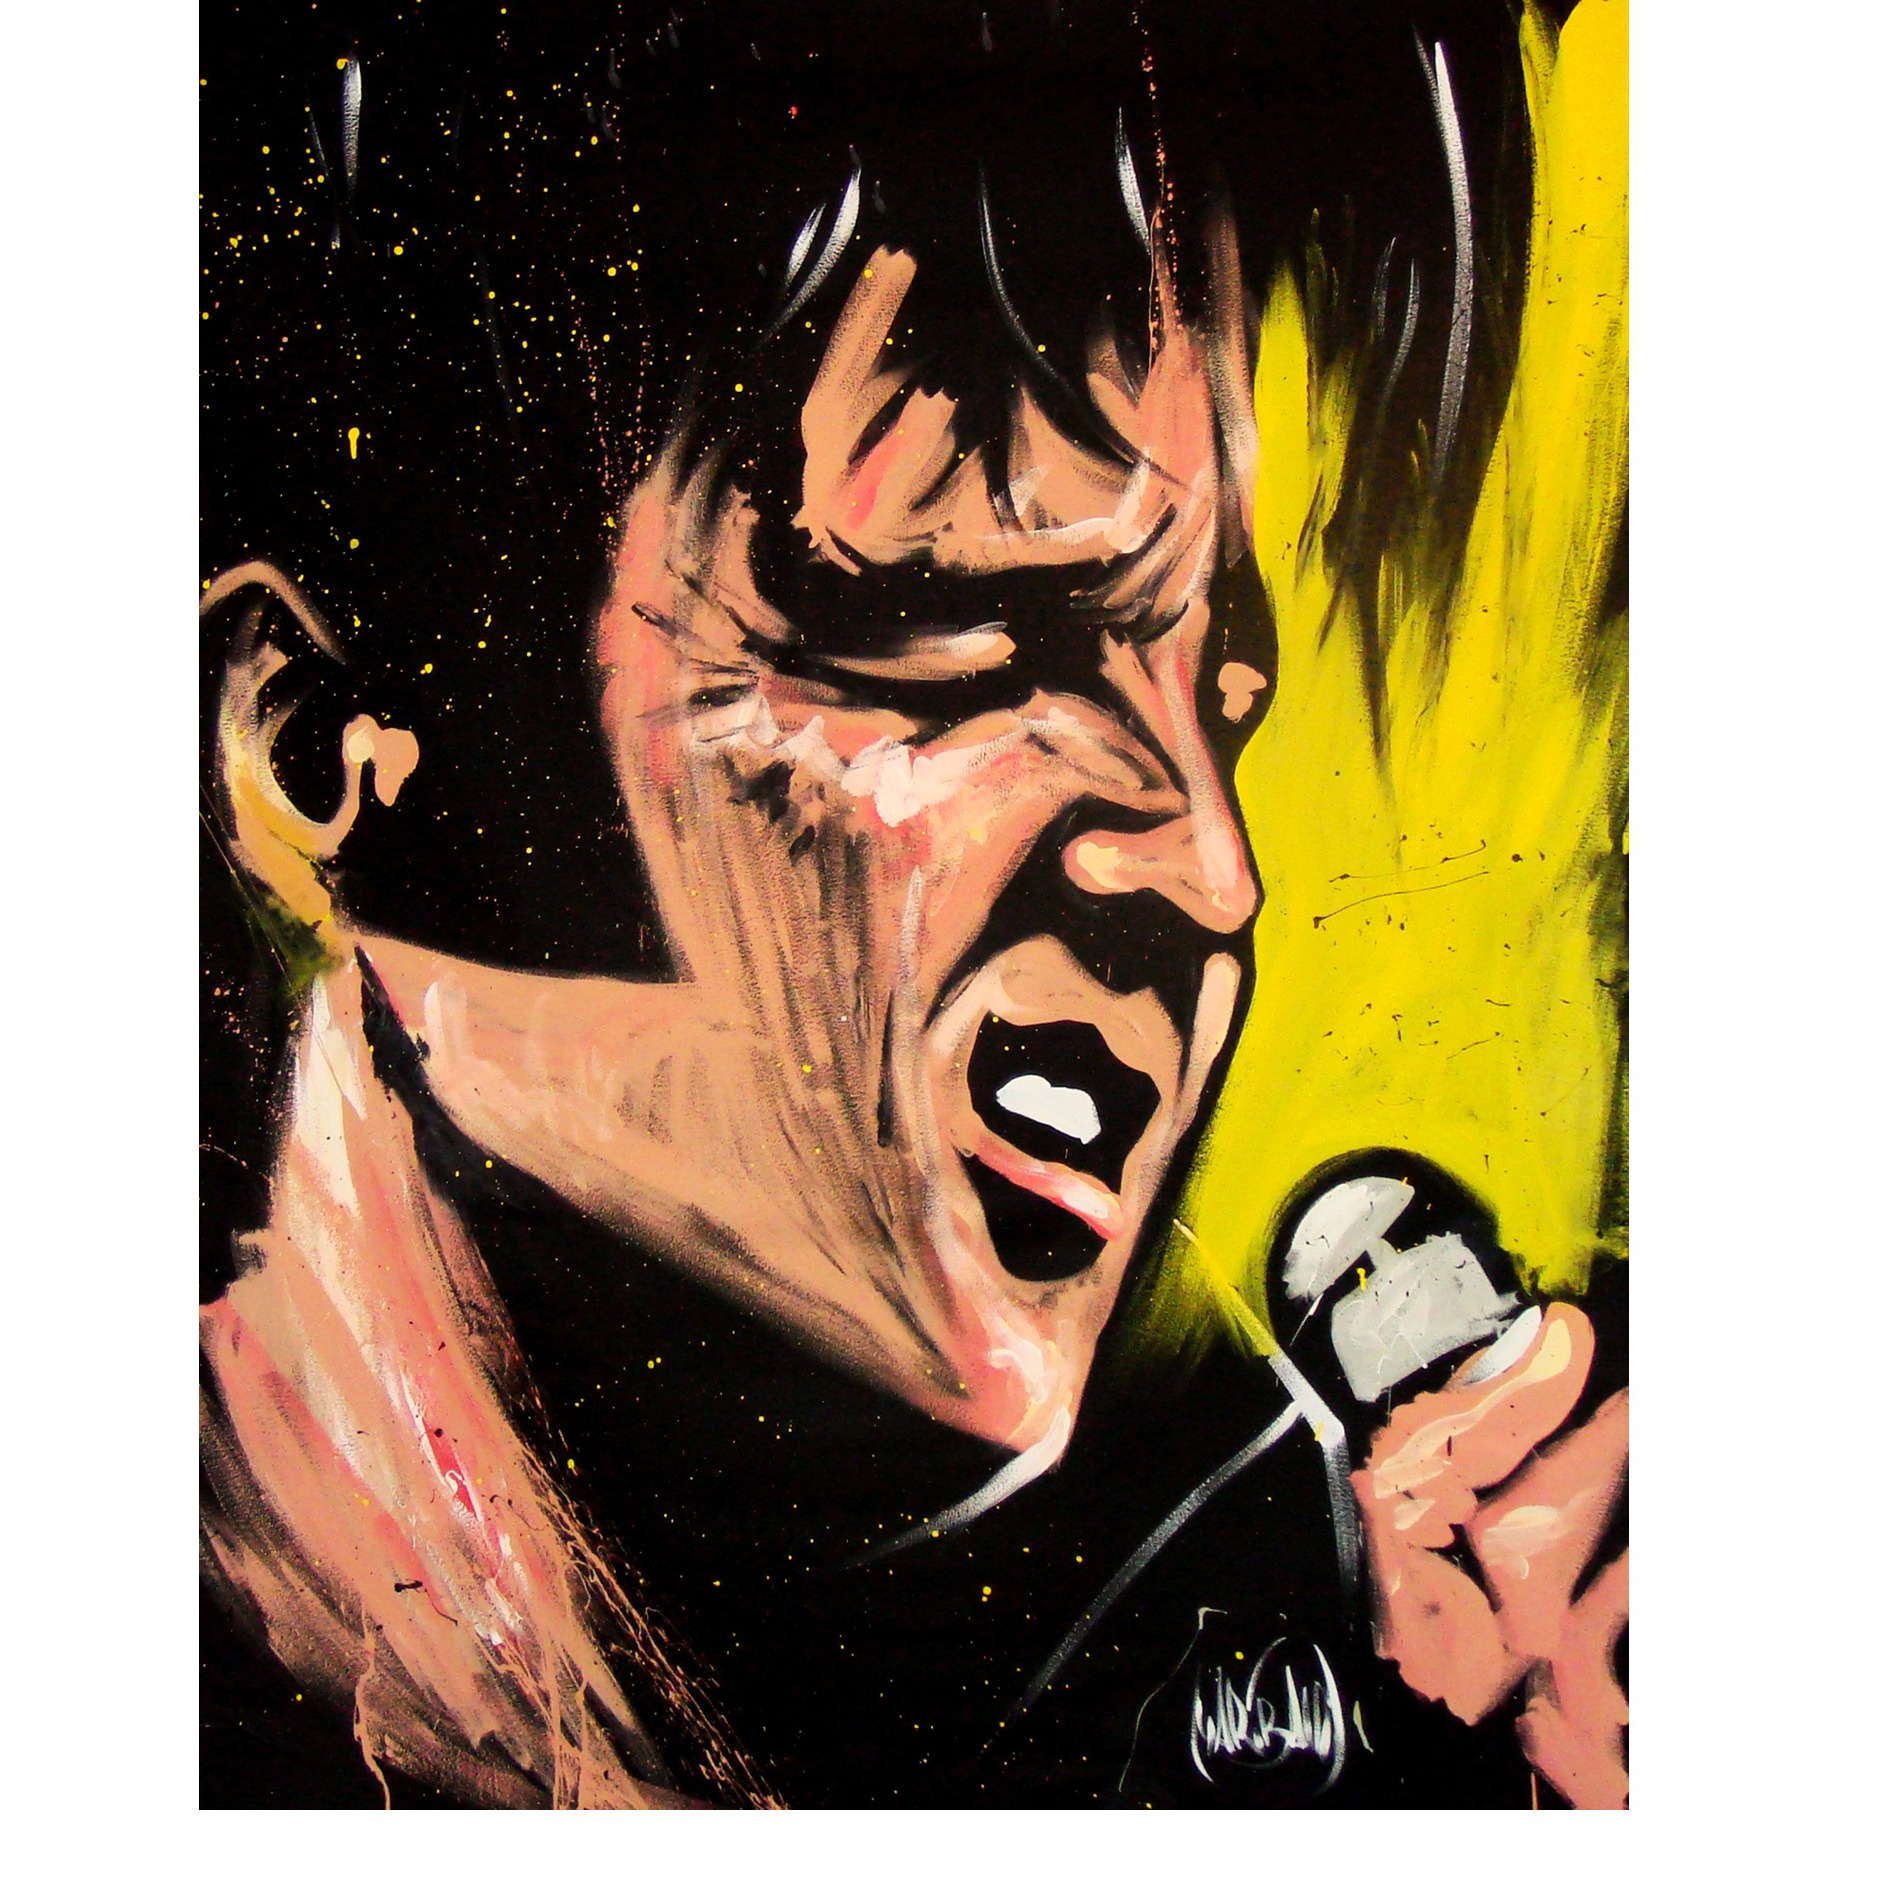 Elvis '68 Comeback Special Art Print by David Garibaldi - 30 by 40 inches